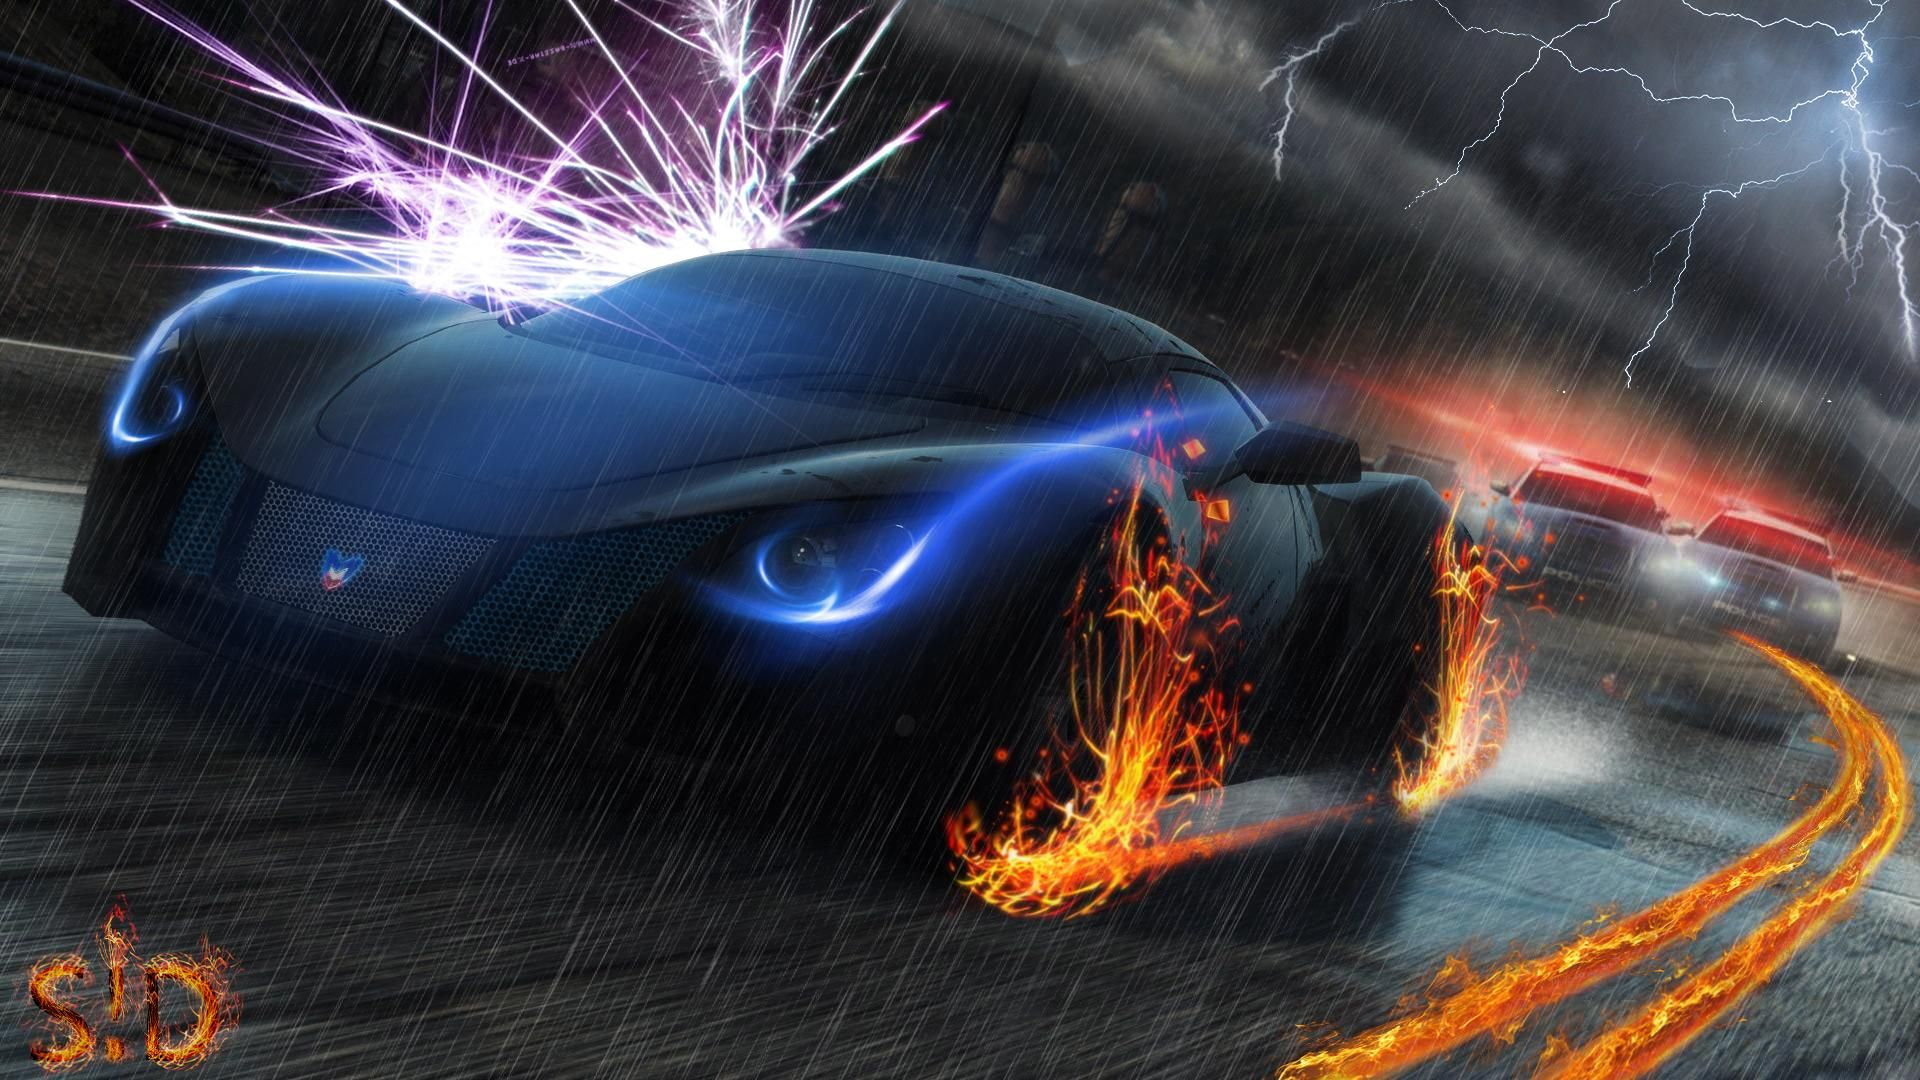 Need For Speed Most Wanted Nfs Iphone Wallpaper Vintage